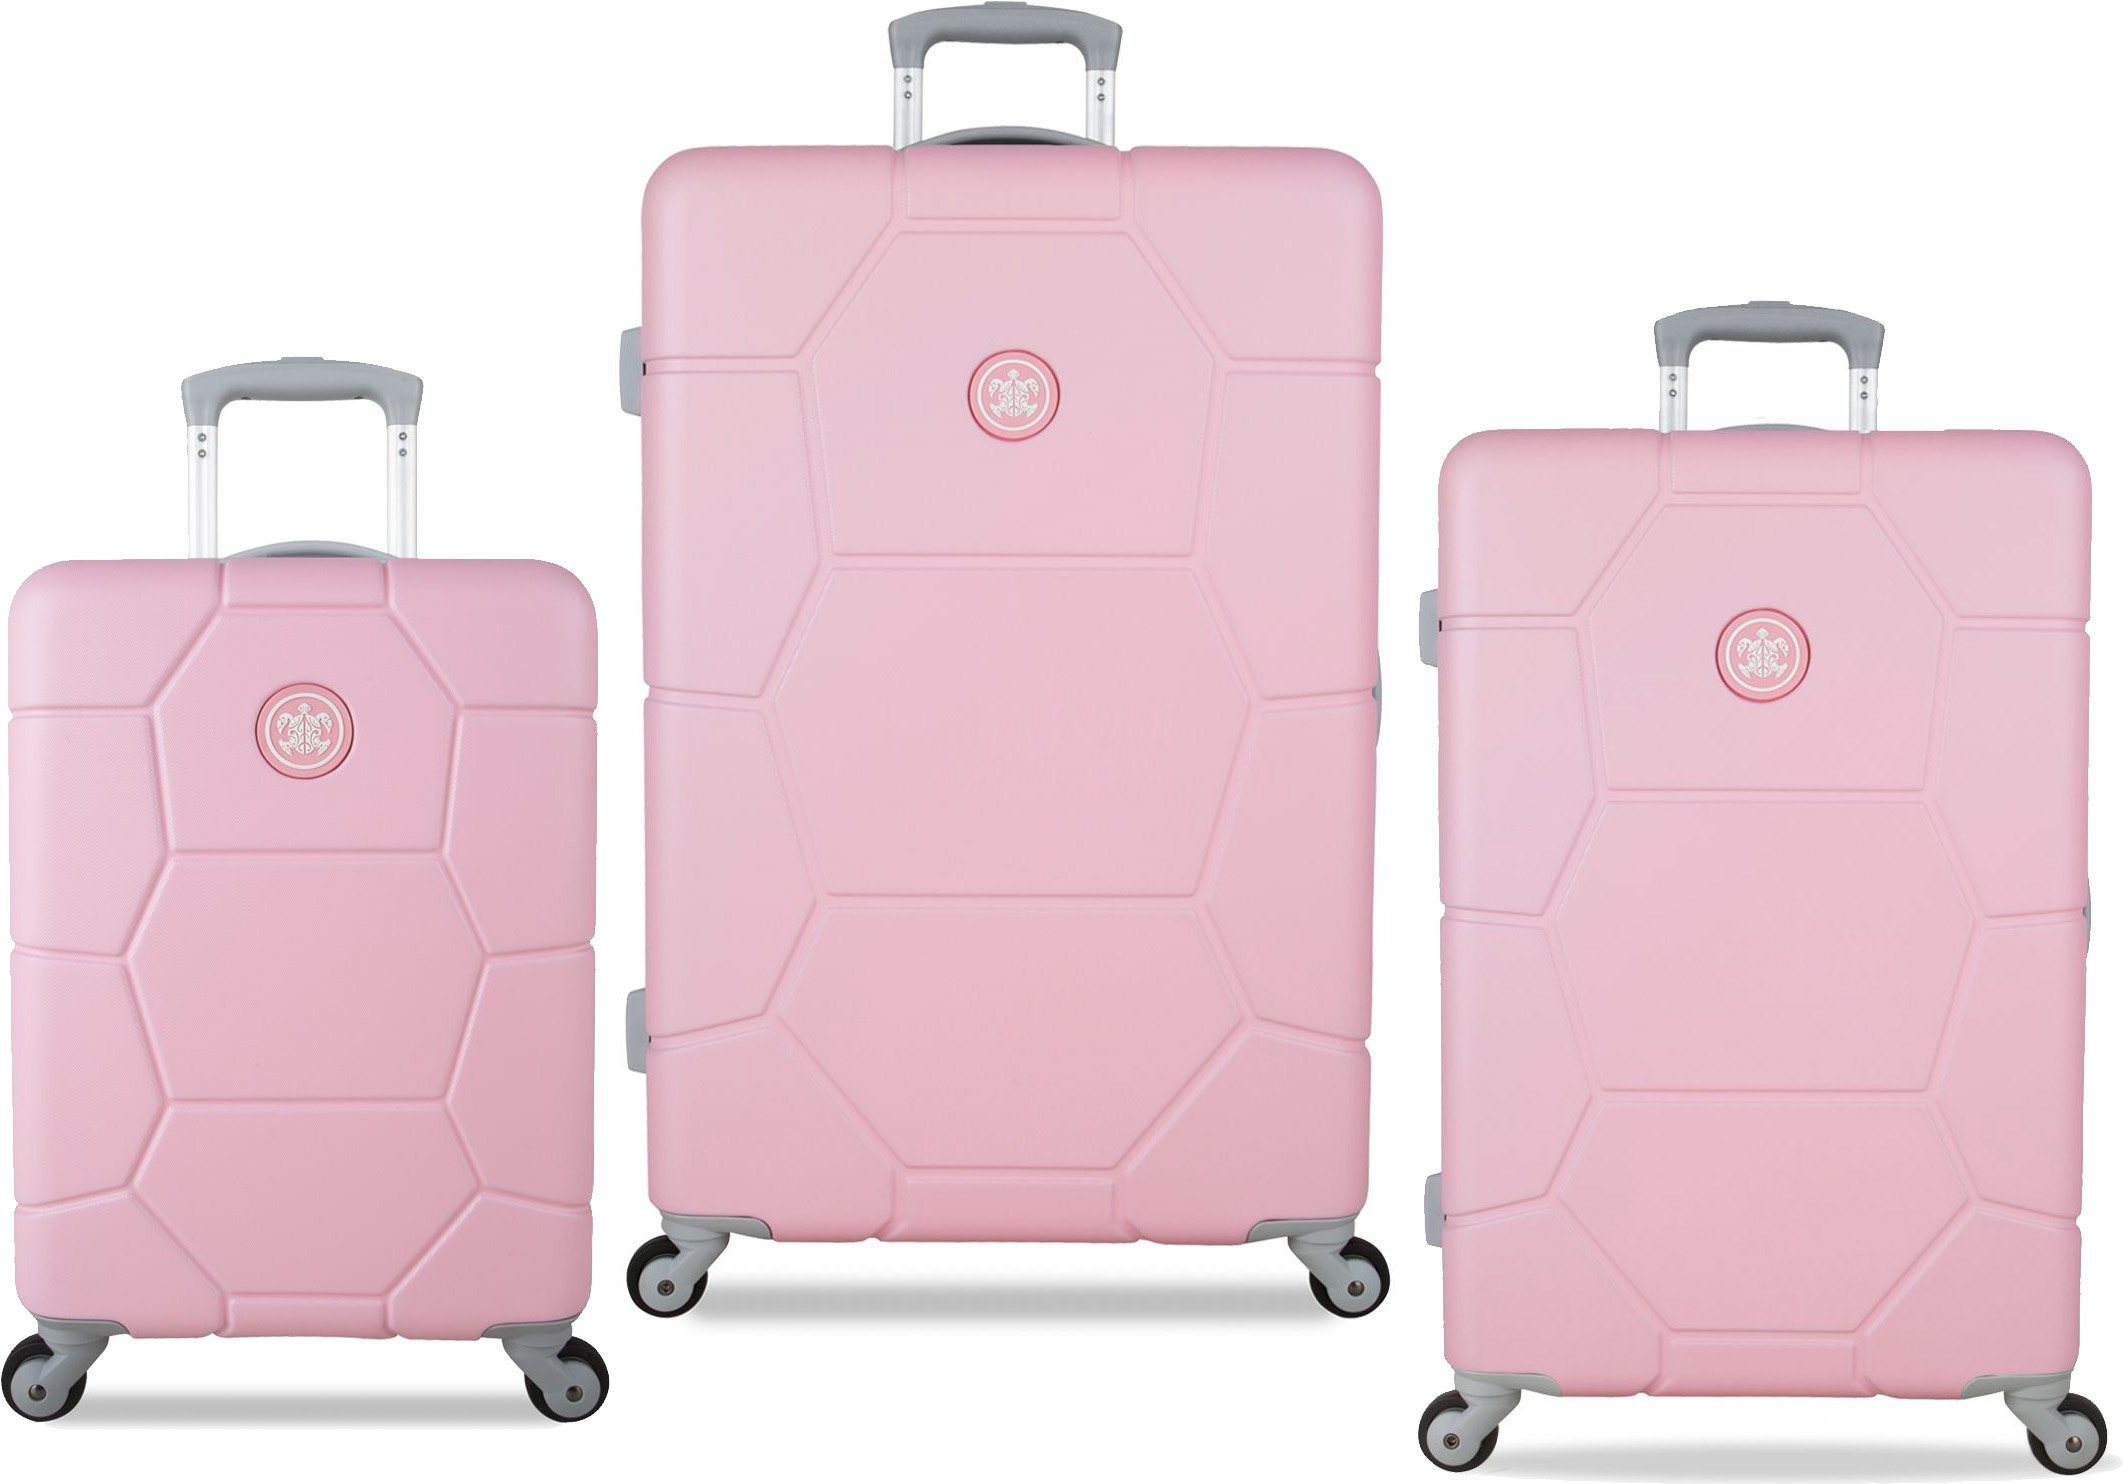 SUITSUIT® Hartschalentrolley Set mit 4 Rollen, 3-tlg., »Caretta Pink Lady«